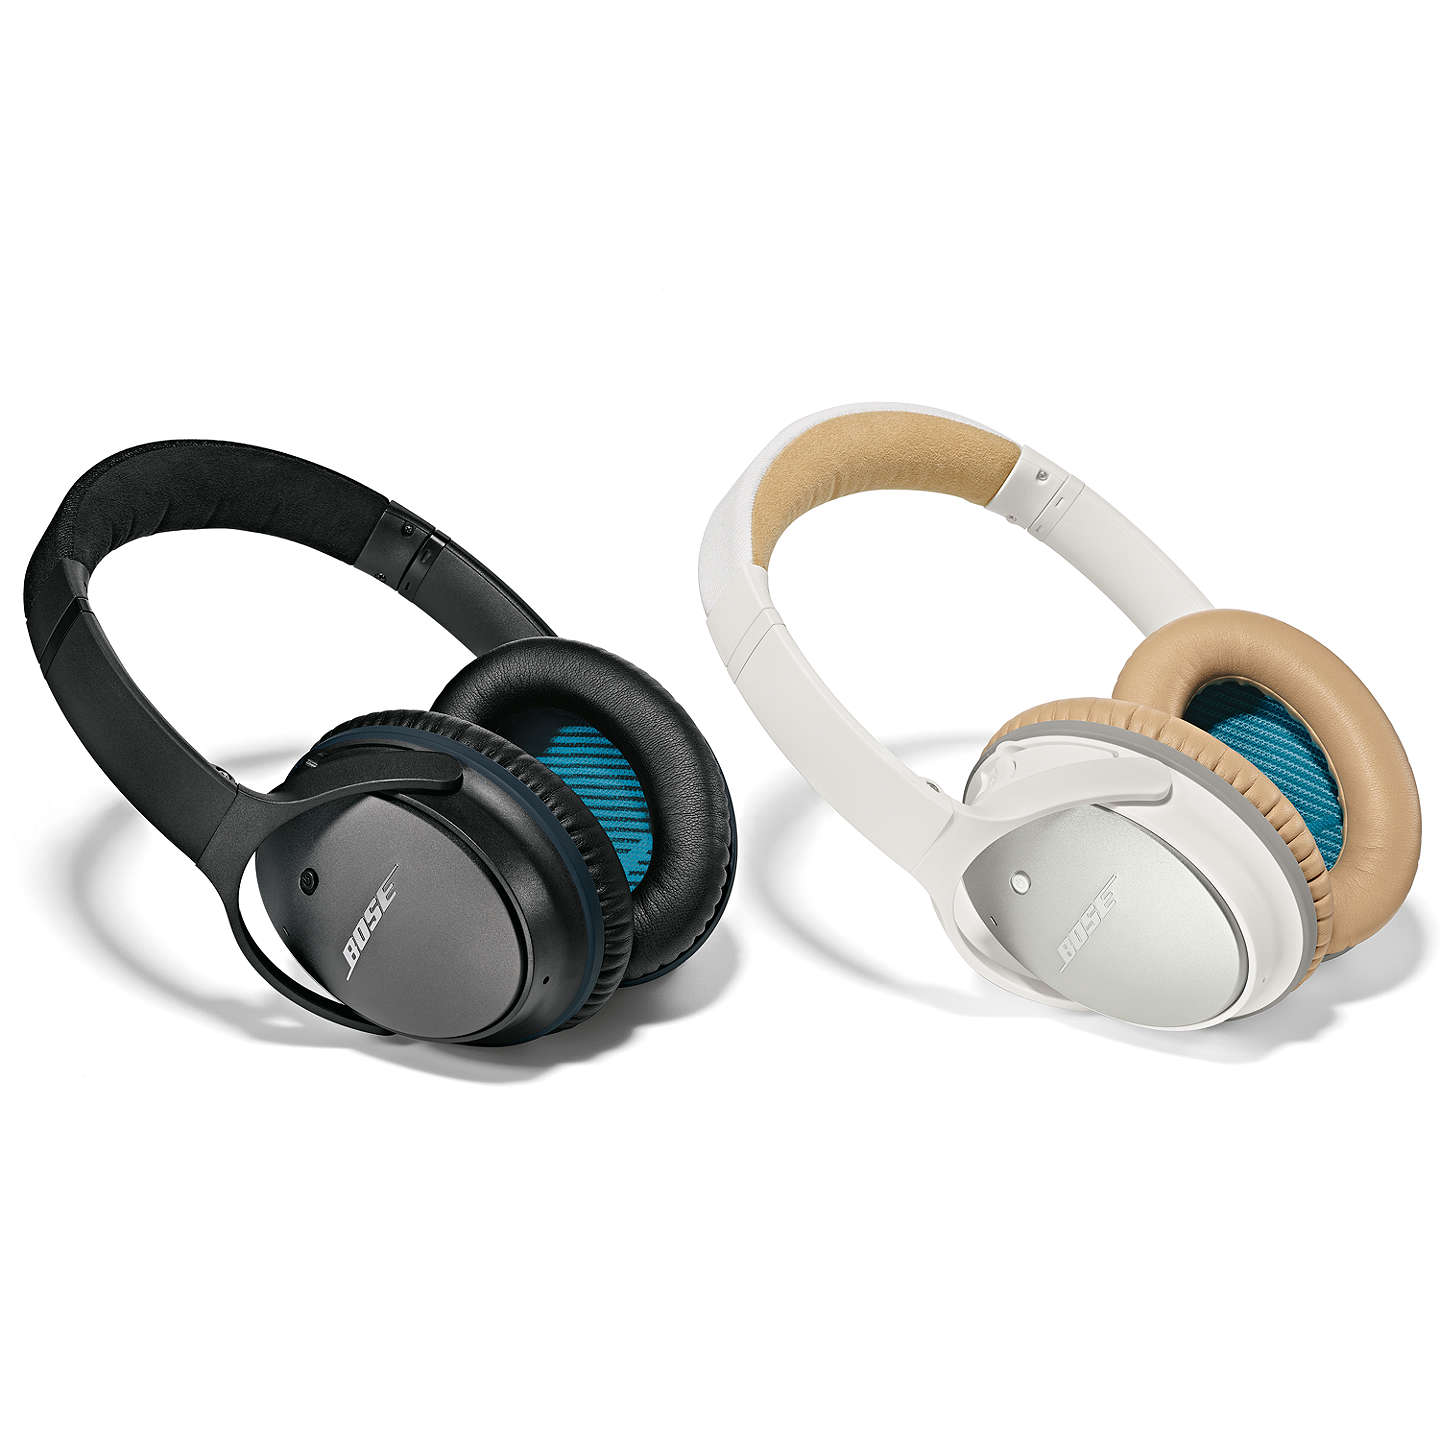 BuyBose® QuietComfort® Noise Cancelling® QC25 Over-Ear Headphones for Android/ Samsung Devices, Black Online at johnlewis.com